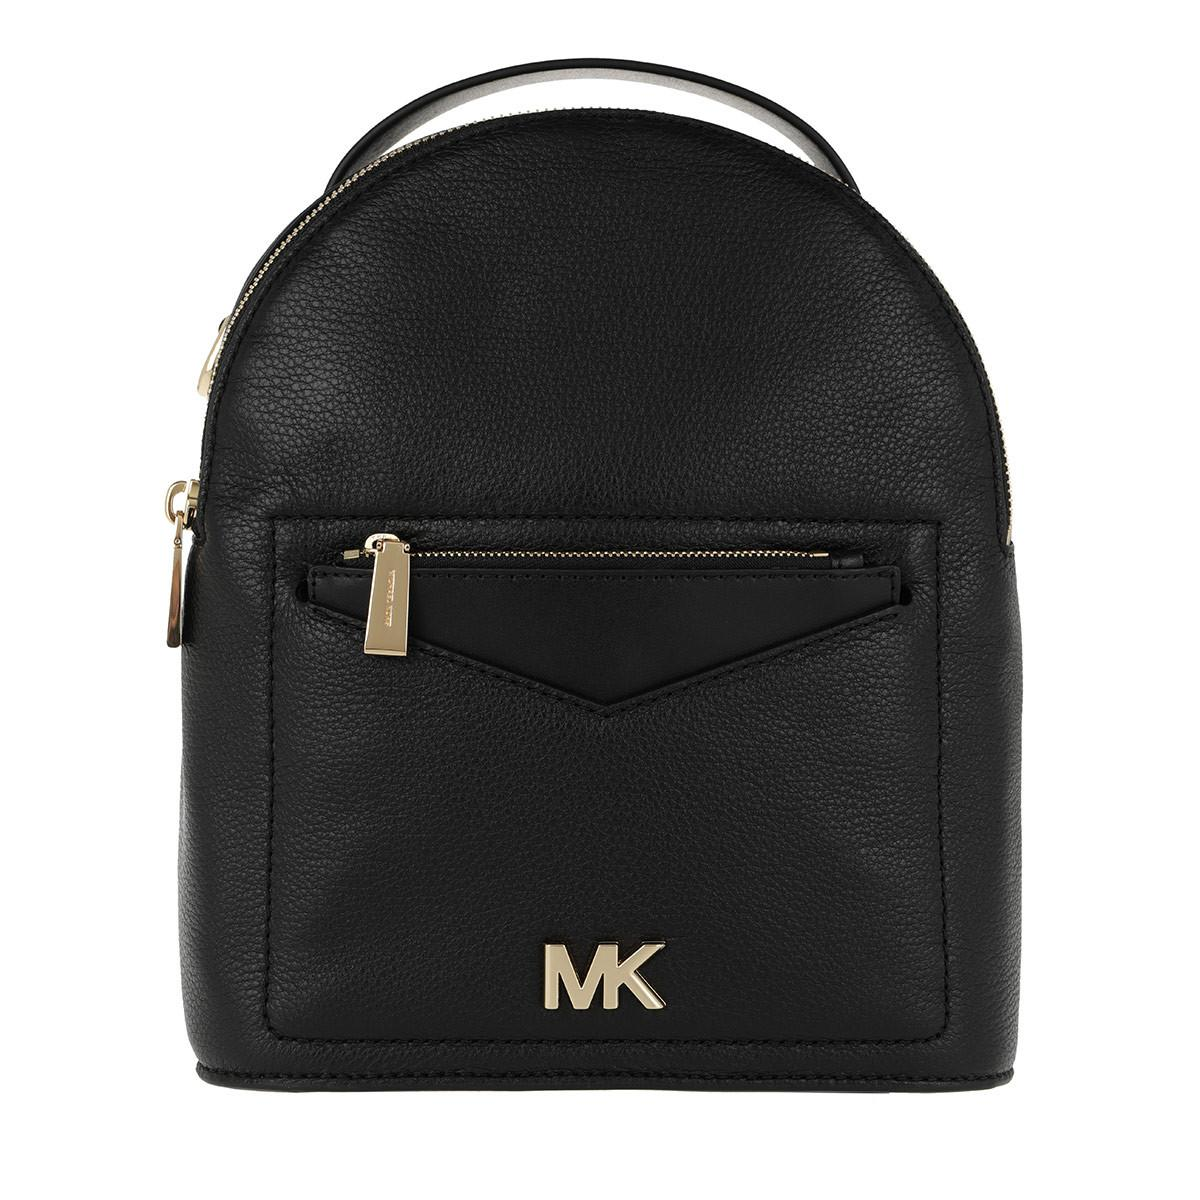 998e4d2b0b77 Michael Kors Jessa Sm Convertible Backpack Black in Black - Lyst